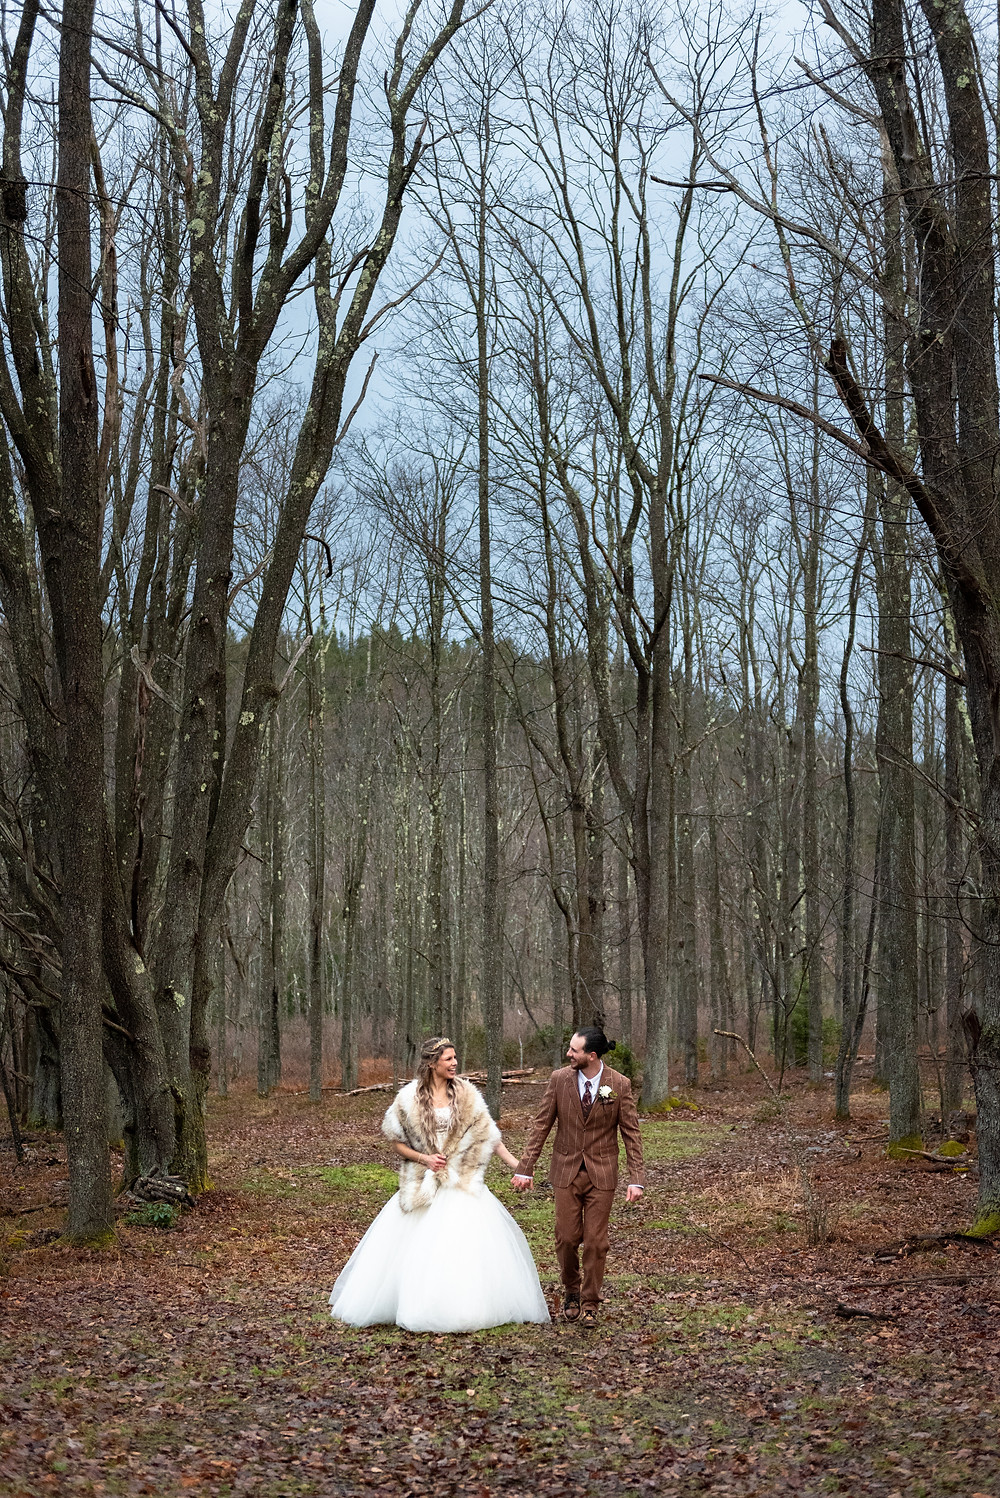 Game of Thrones wedding in the forest